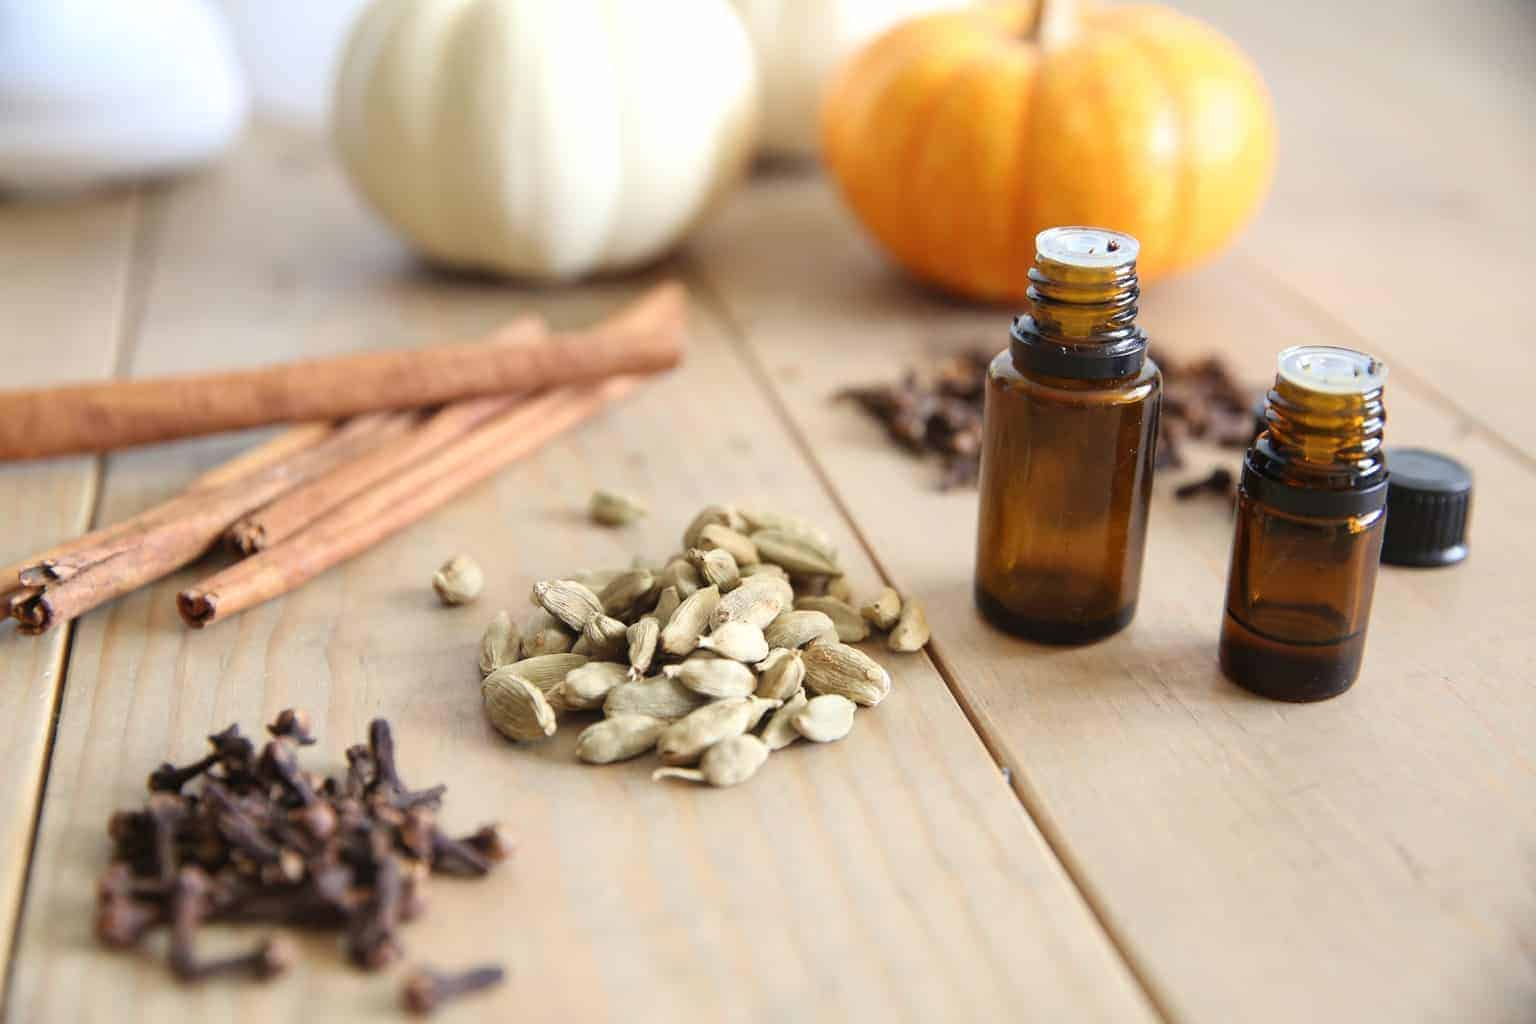 Diffusing essentiel oils during the fall months can create a cozy fall atmosphere while boosting the immune system naturally and killing germs in the air.